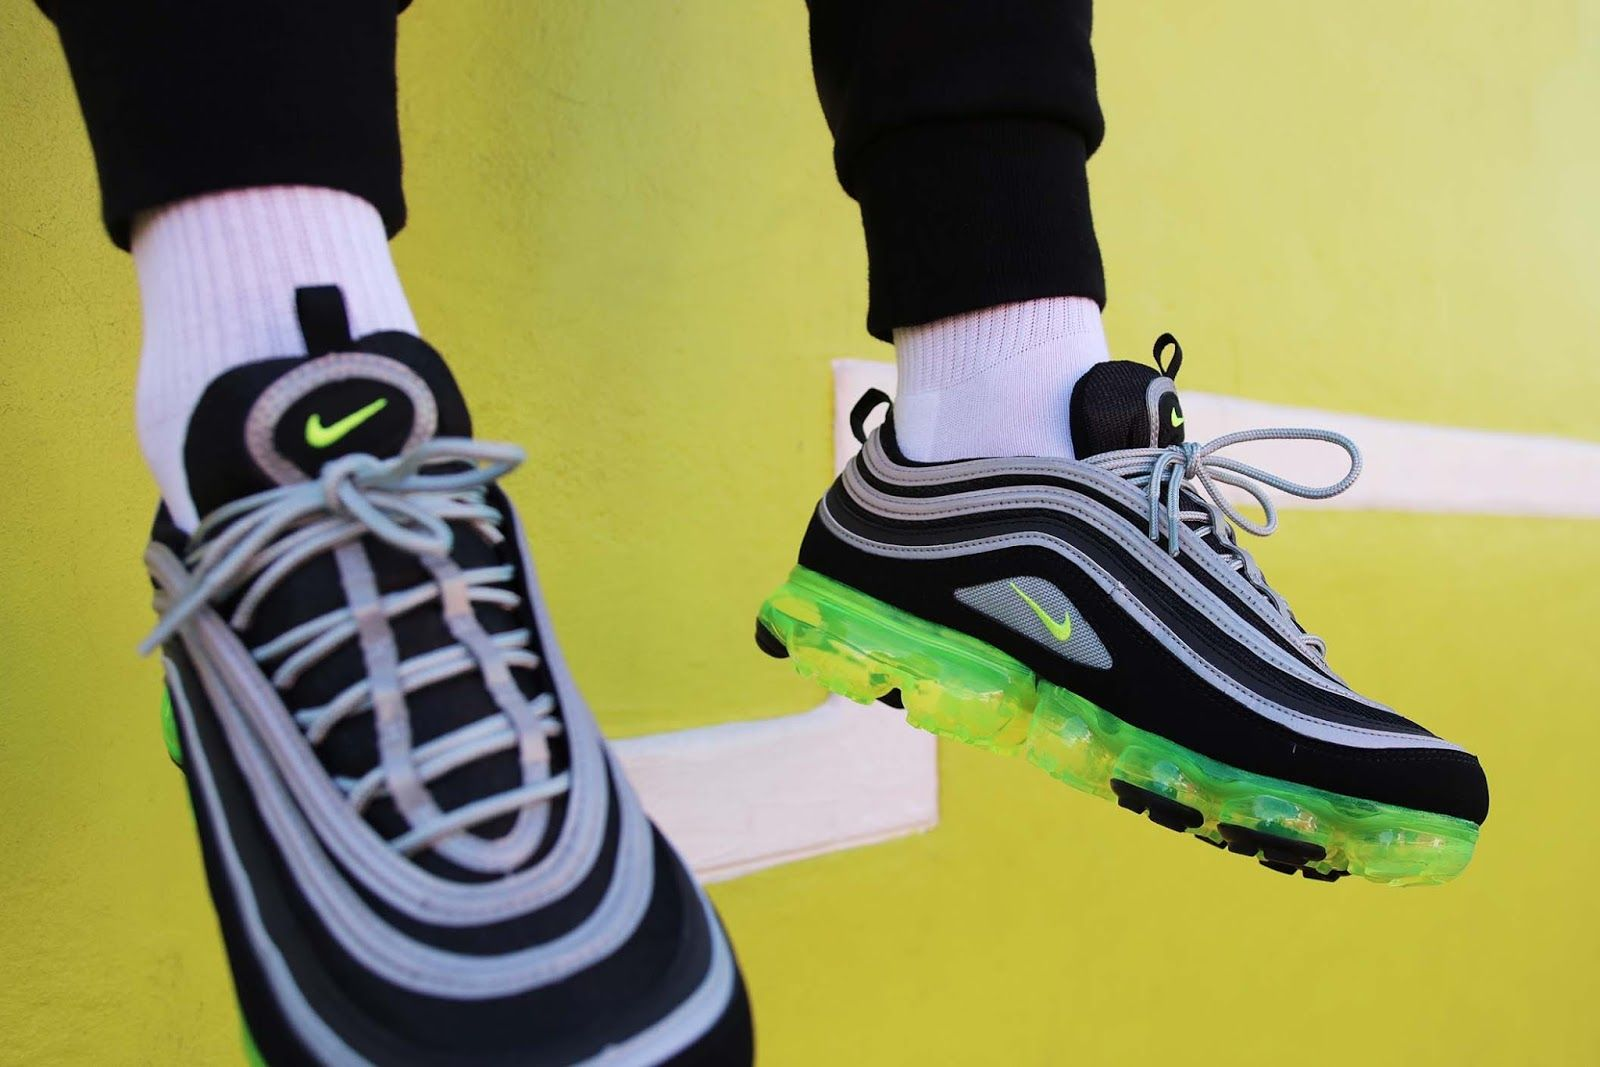 712cb6d37d686 The hybrid Nike Air VaporMax 97 is a new style that is releasing in the  classic Neon colourway which takes inspiration from the Air Max 9.